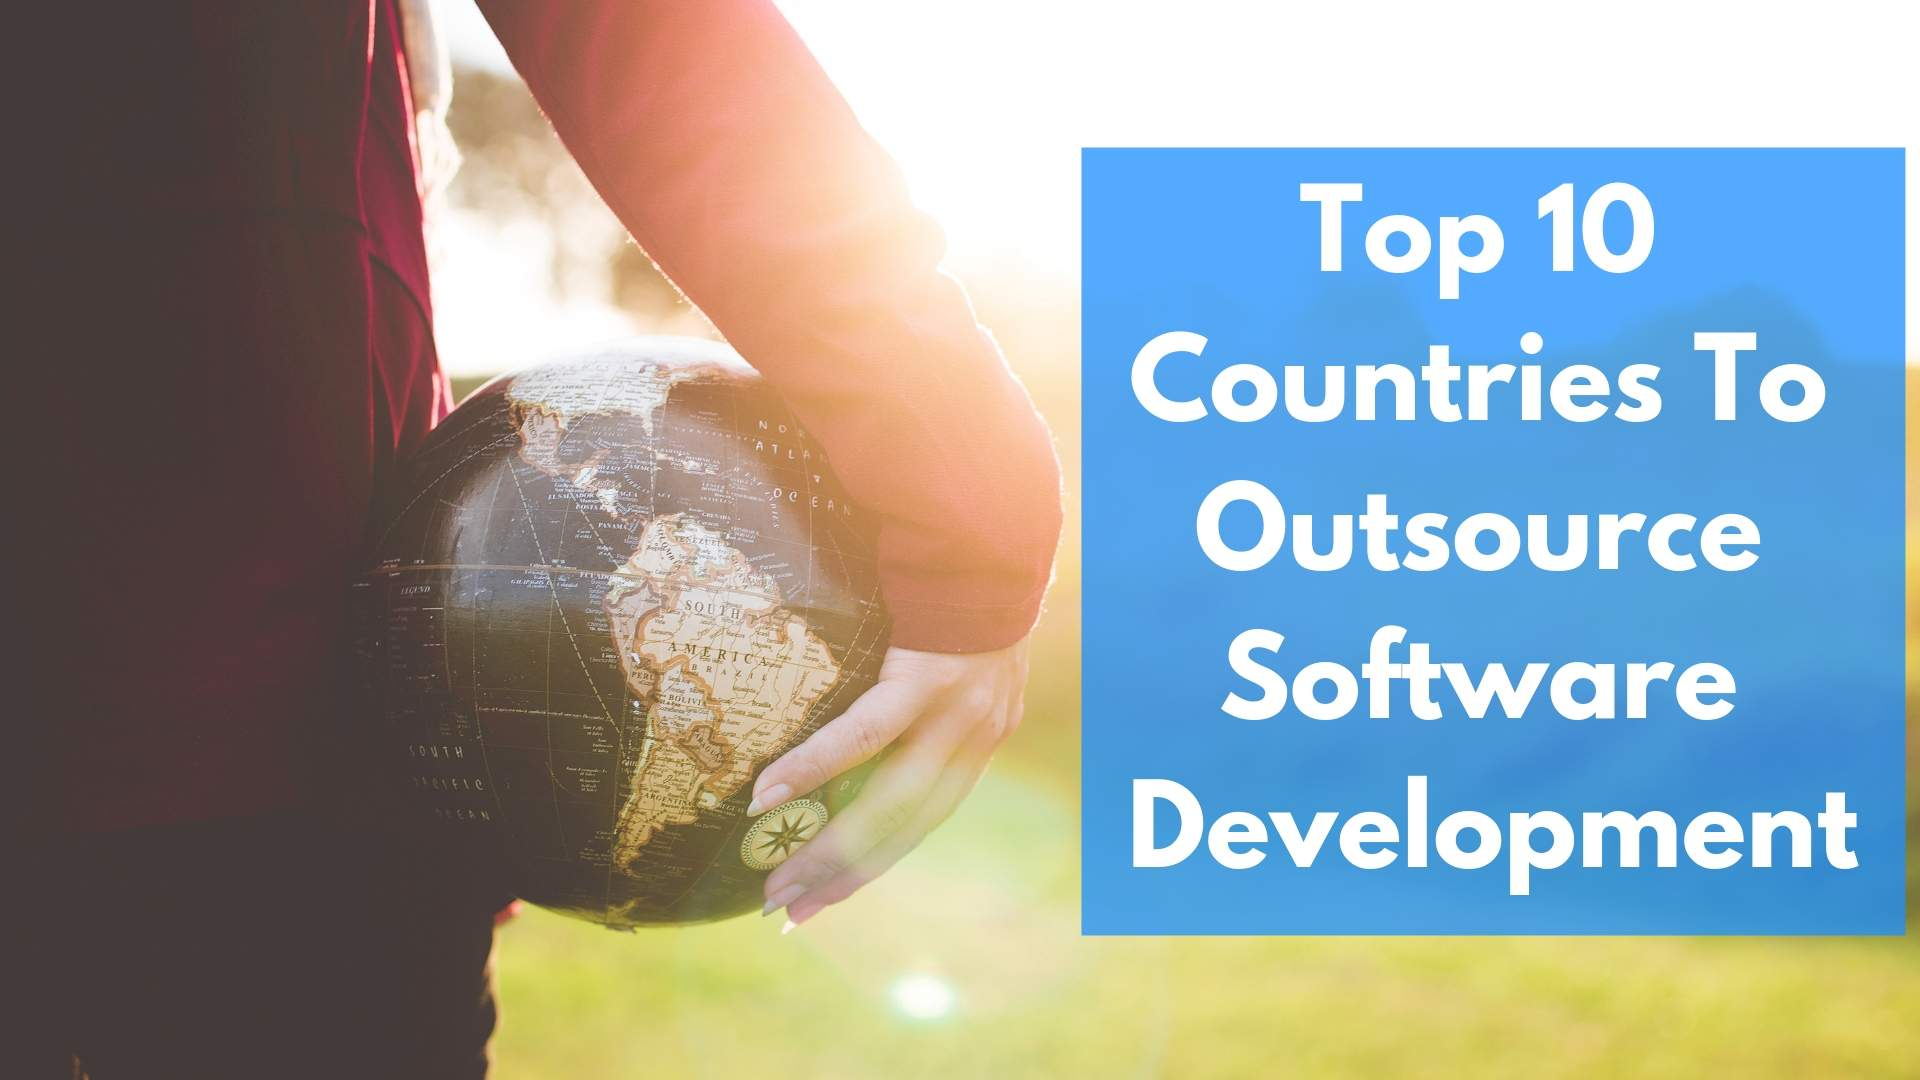 Top 10 Countries To Outsource Software Development